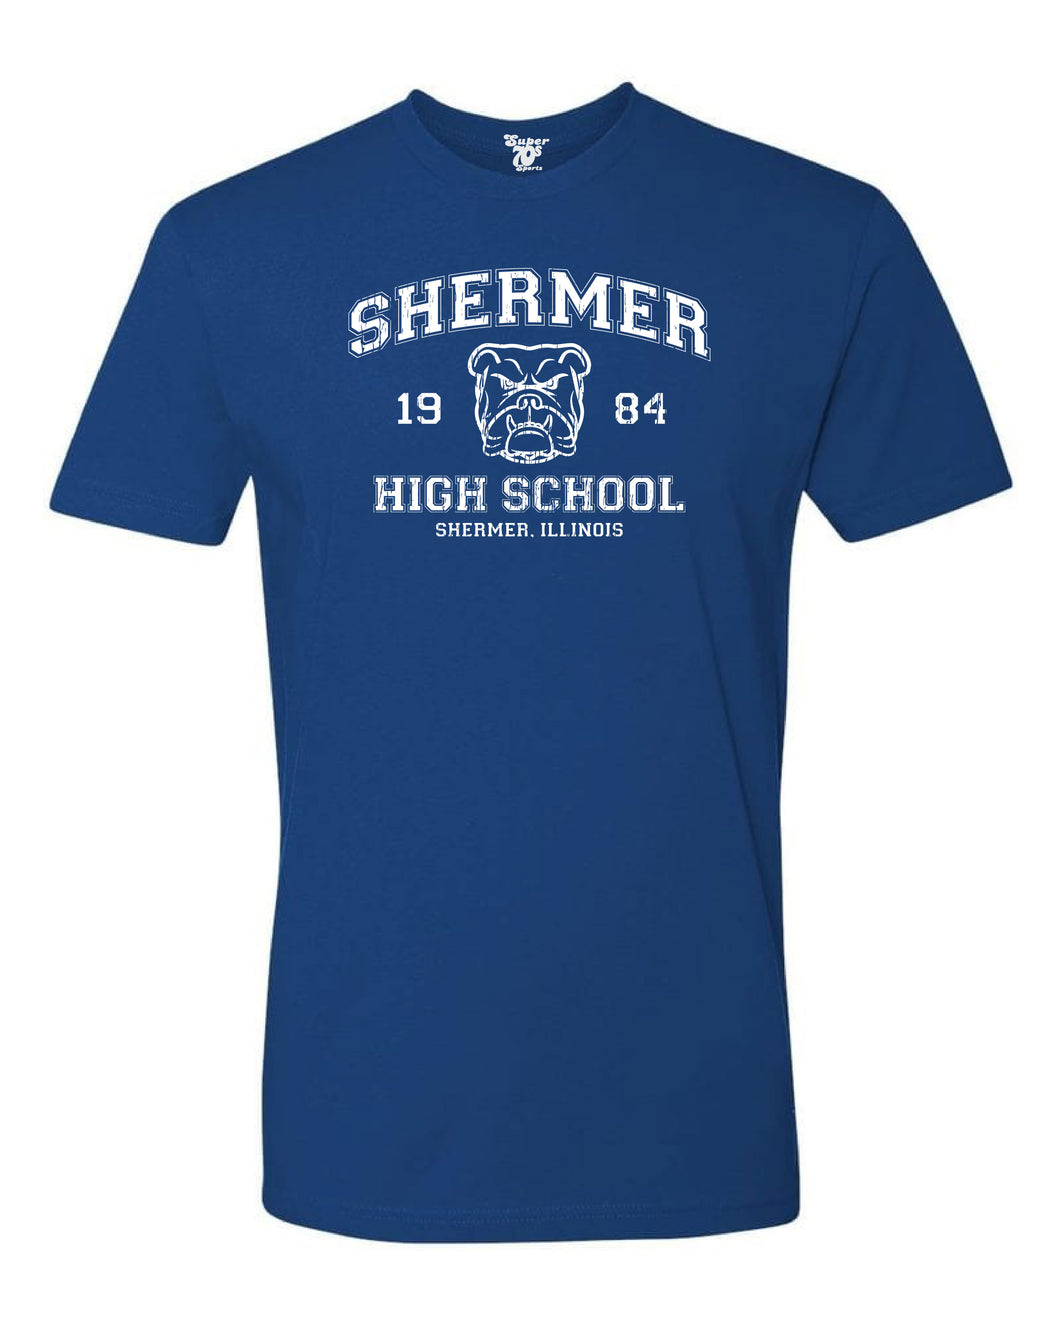 Shermer High School Tee